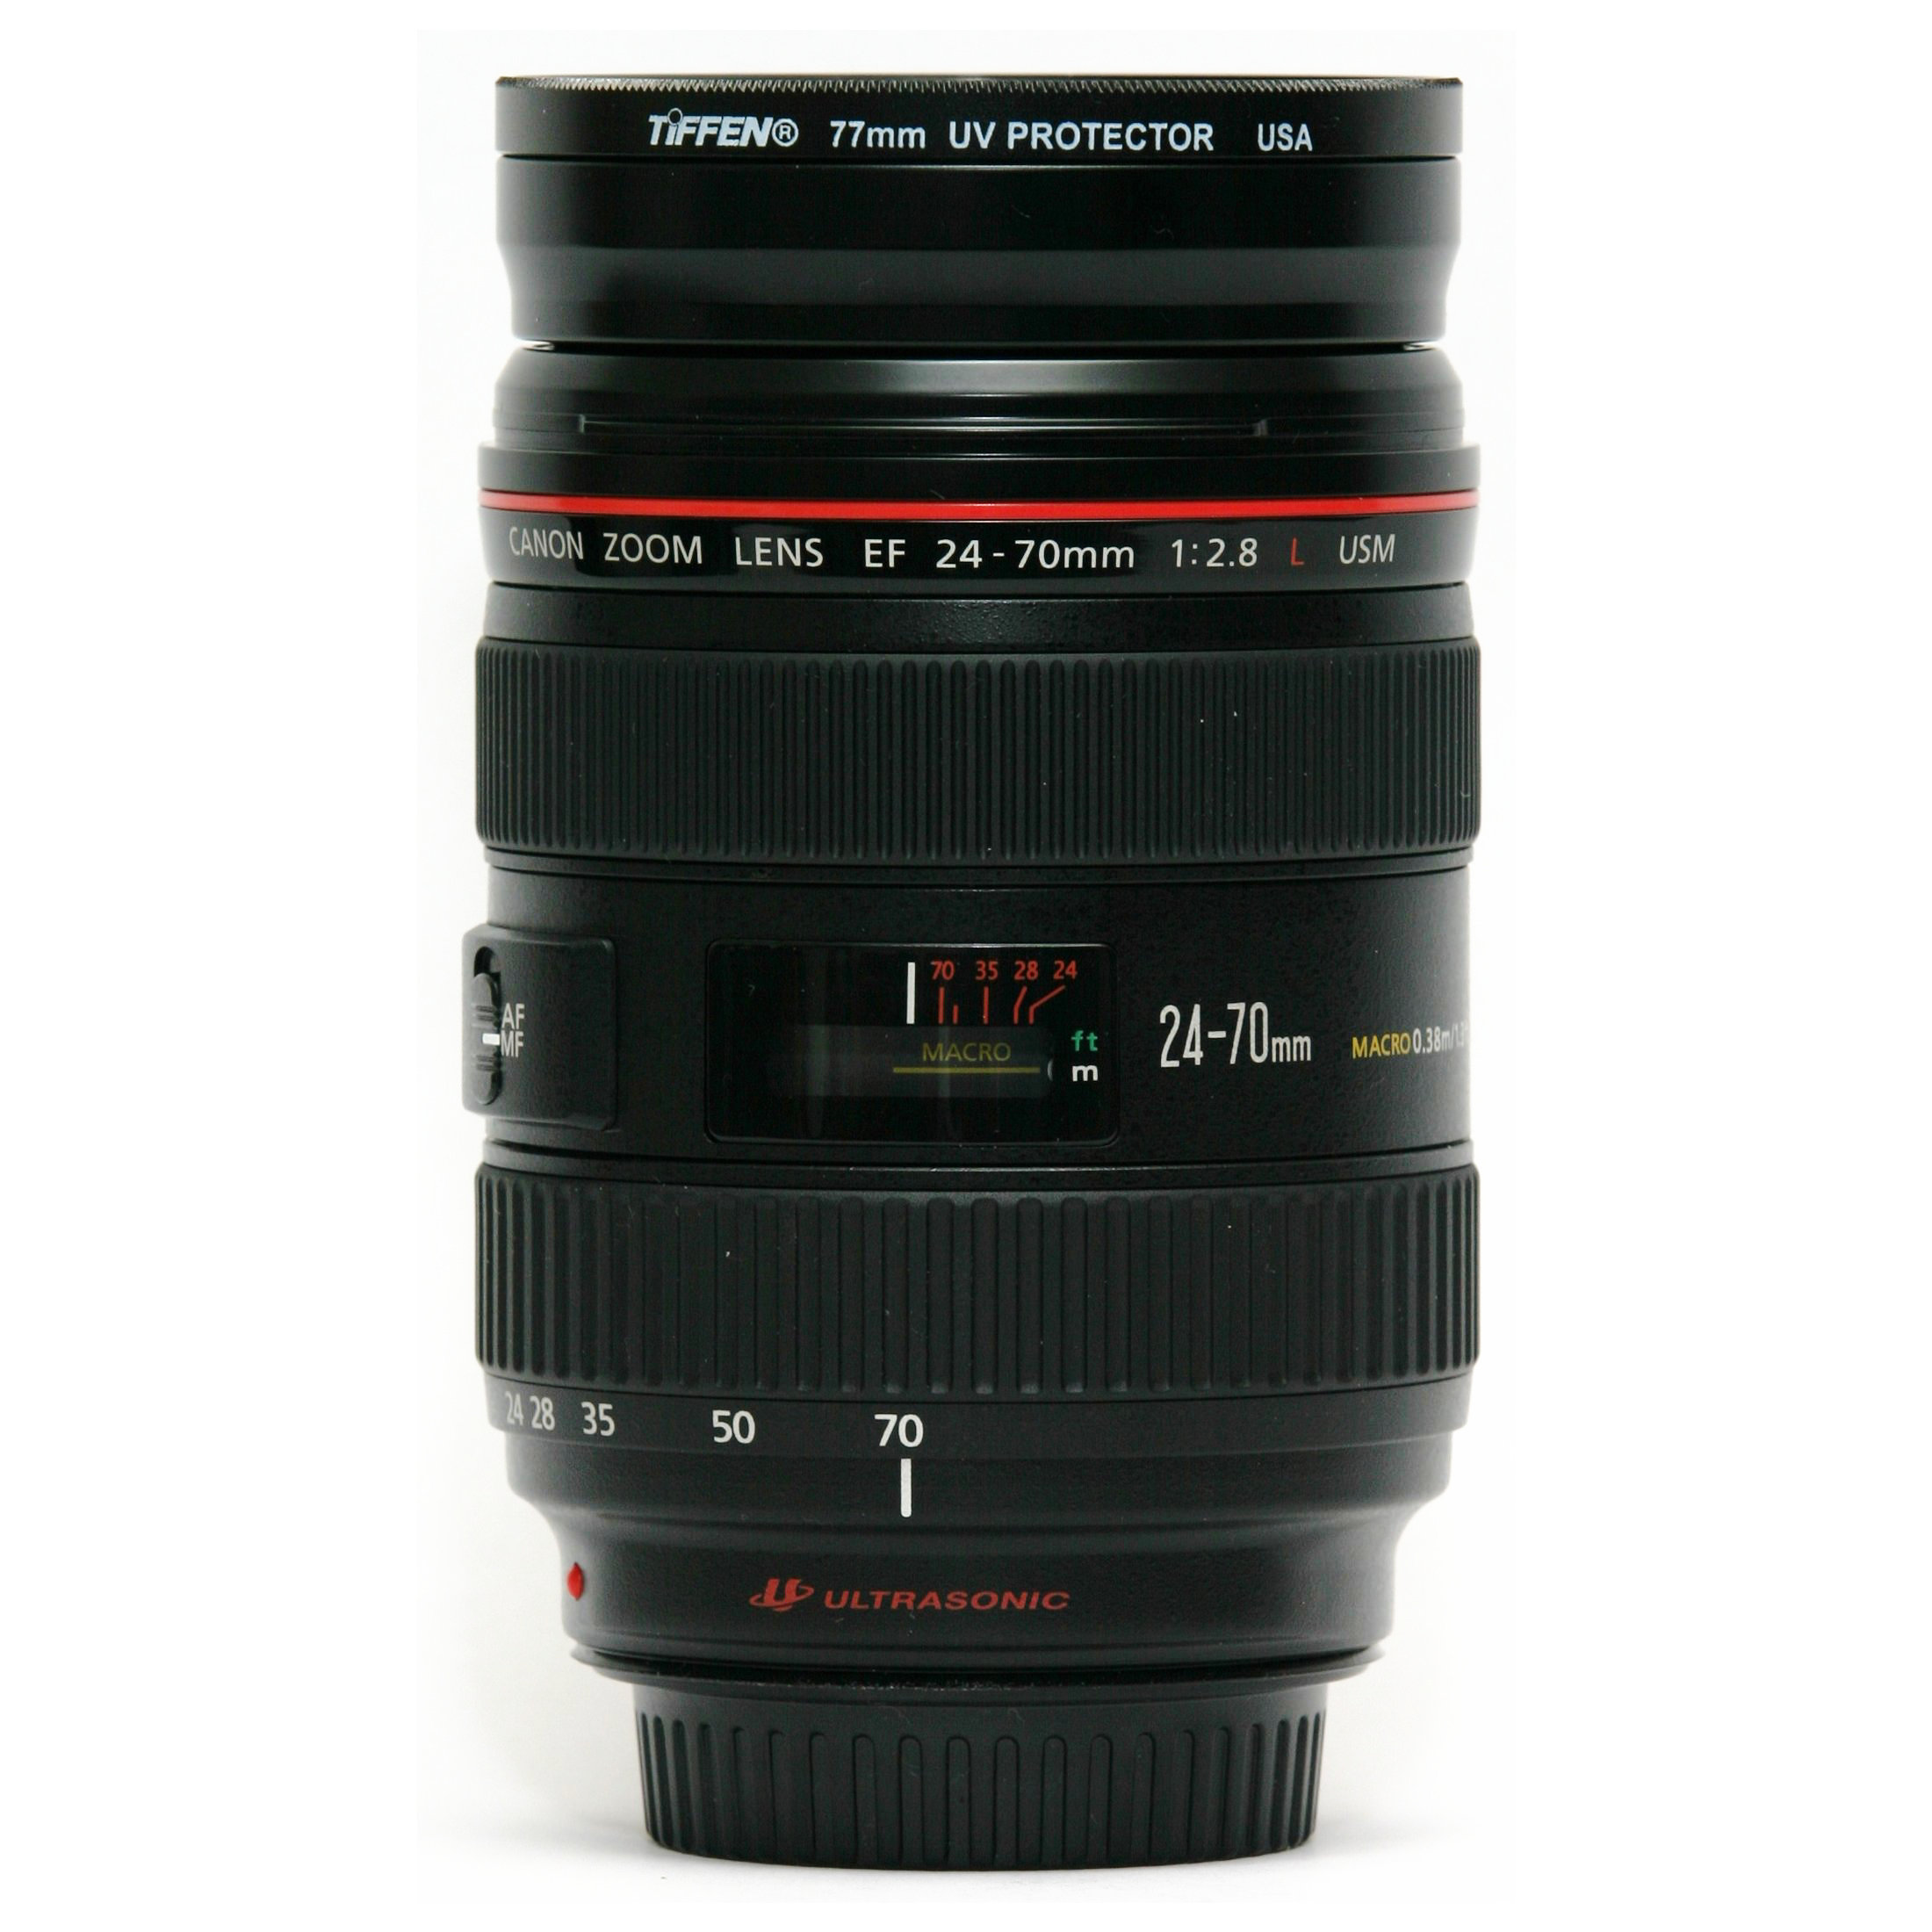 File:Canon 24-70 mm F2.8 lens side at 70 mm.jpg ...